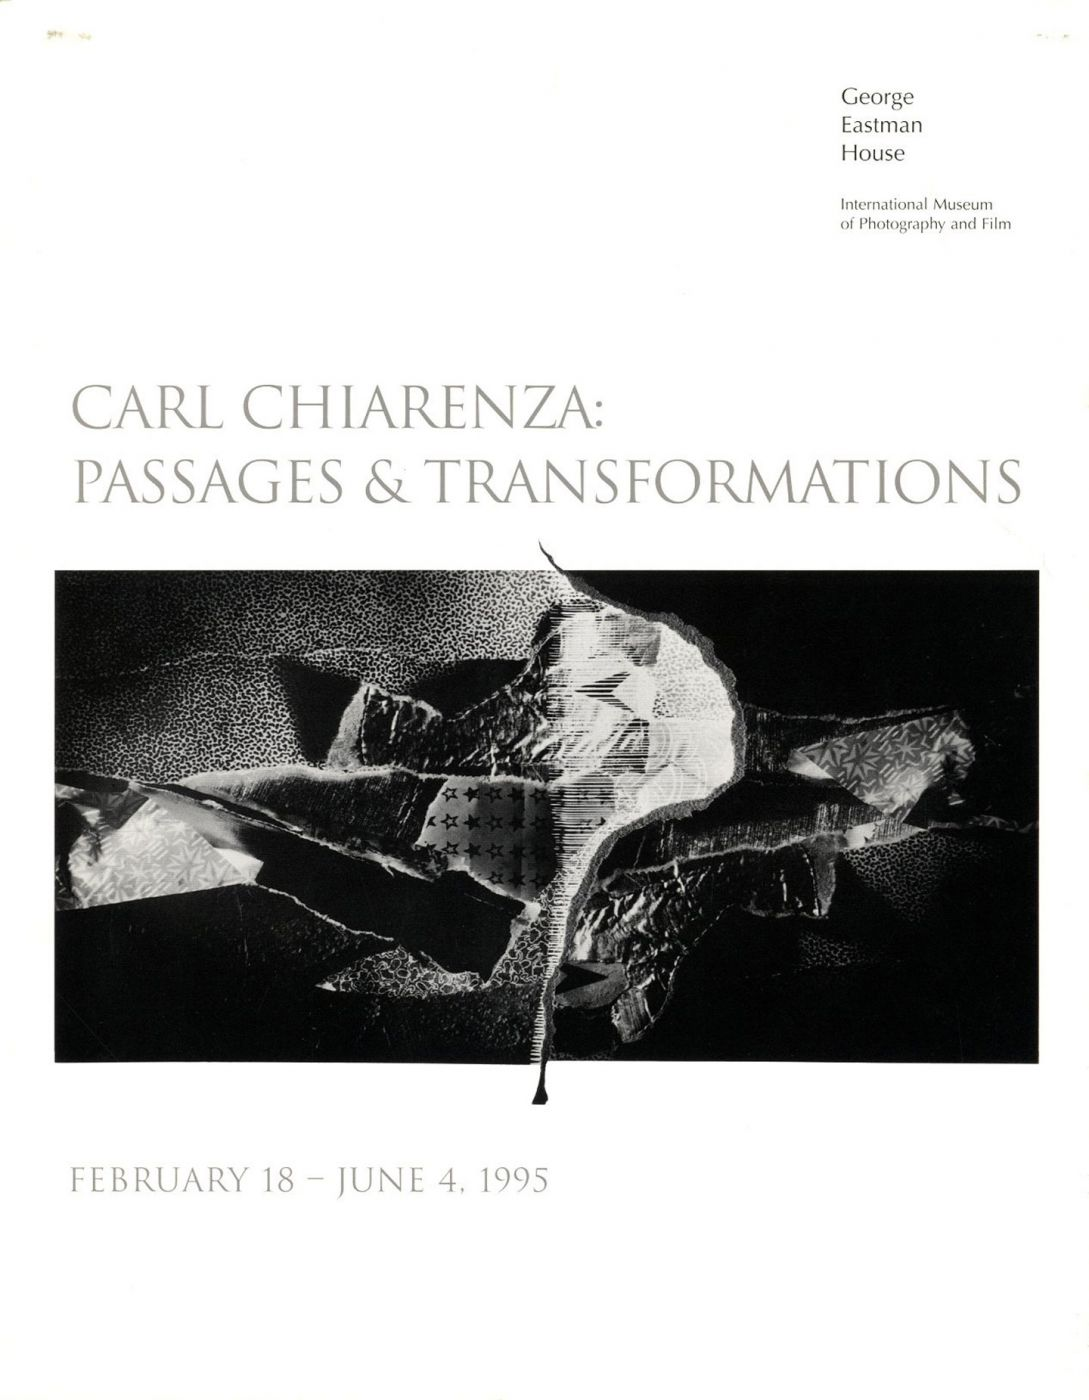 Carl Chiarenza: Passages and Transformations (Exhibition Brochure) [SIGNED ASSOCIATION COPY]